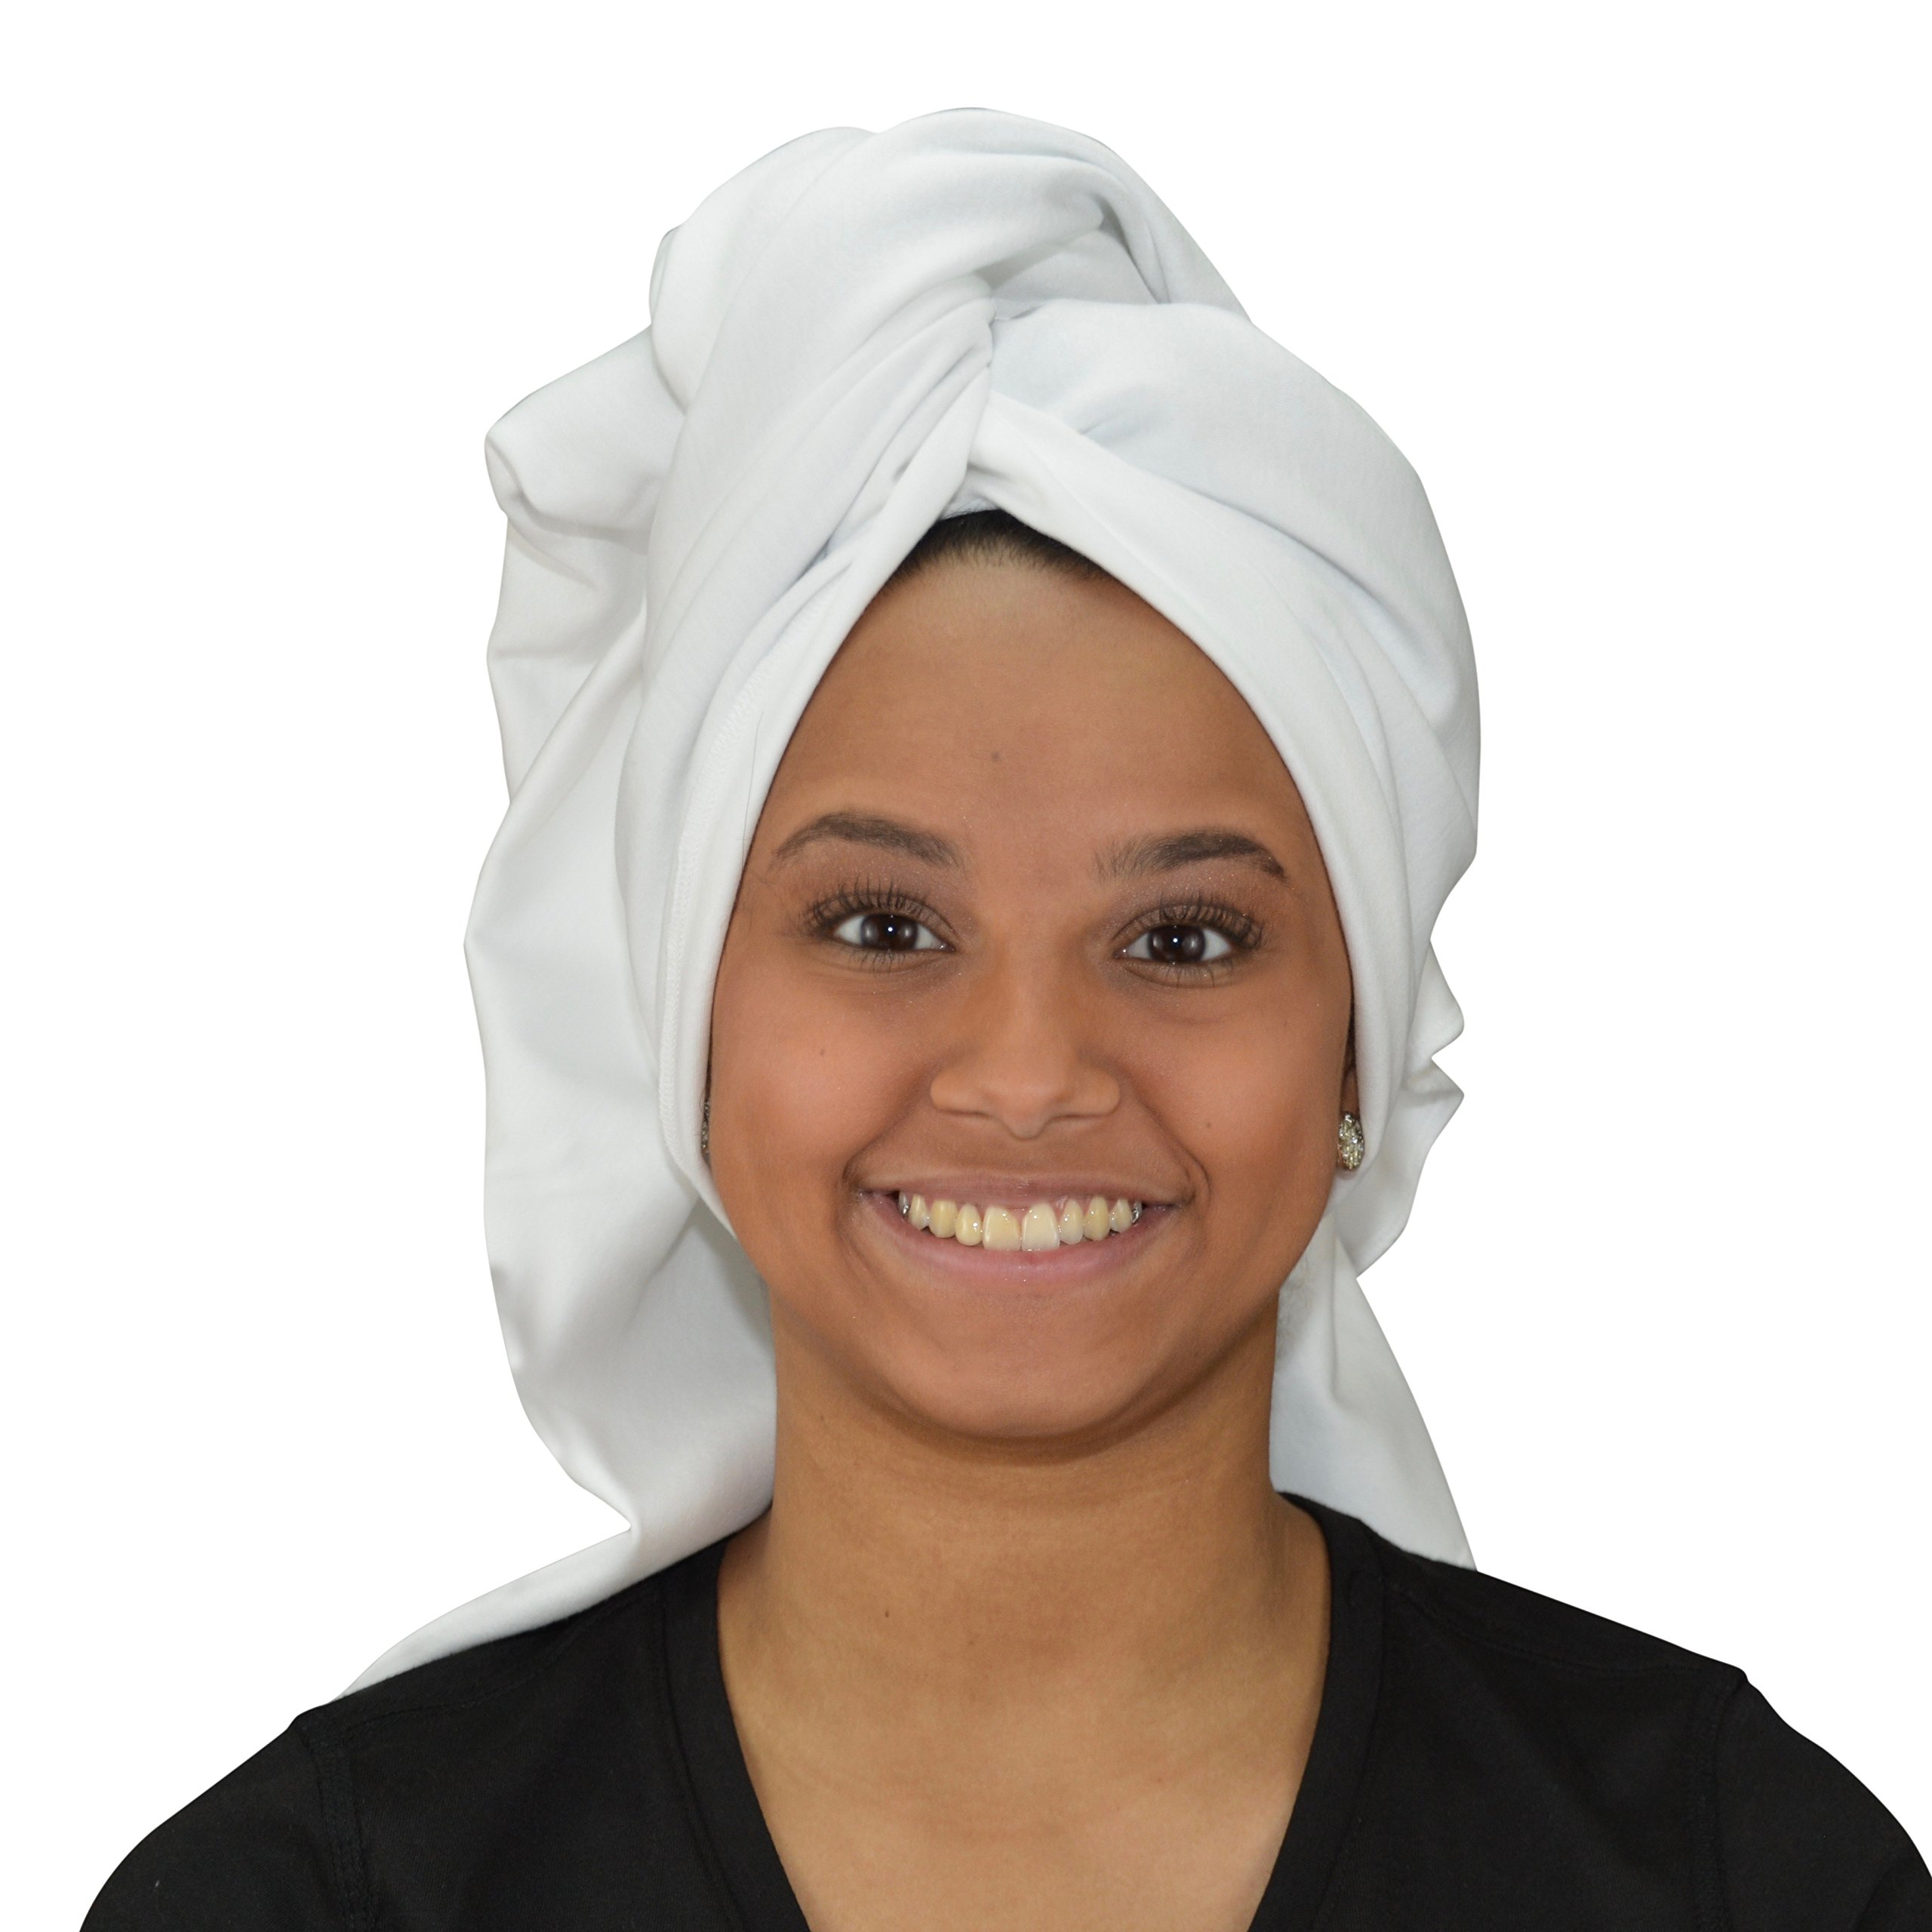 100% Cotton Absorbent T-Shirt Towel WHITE (49 X 32in) Have Healthy Hair Without The Damage or Frizz